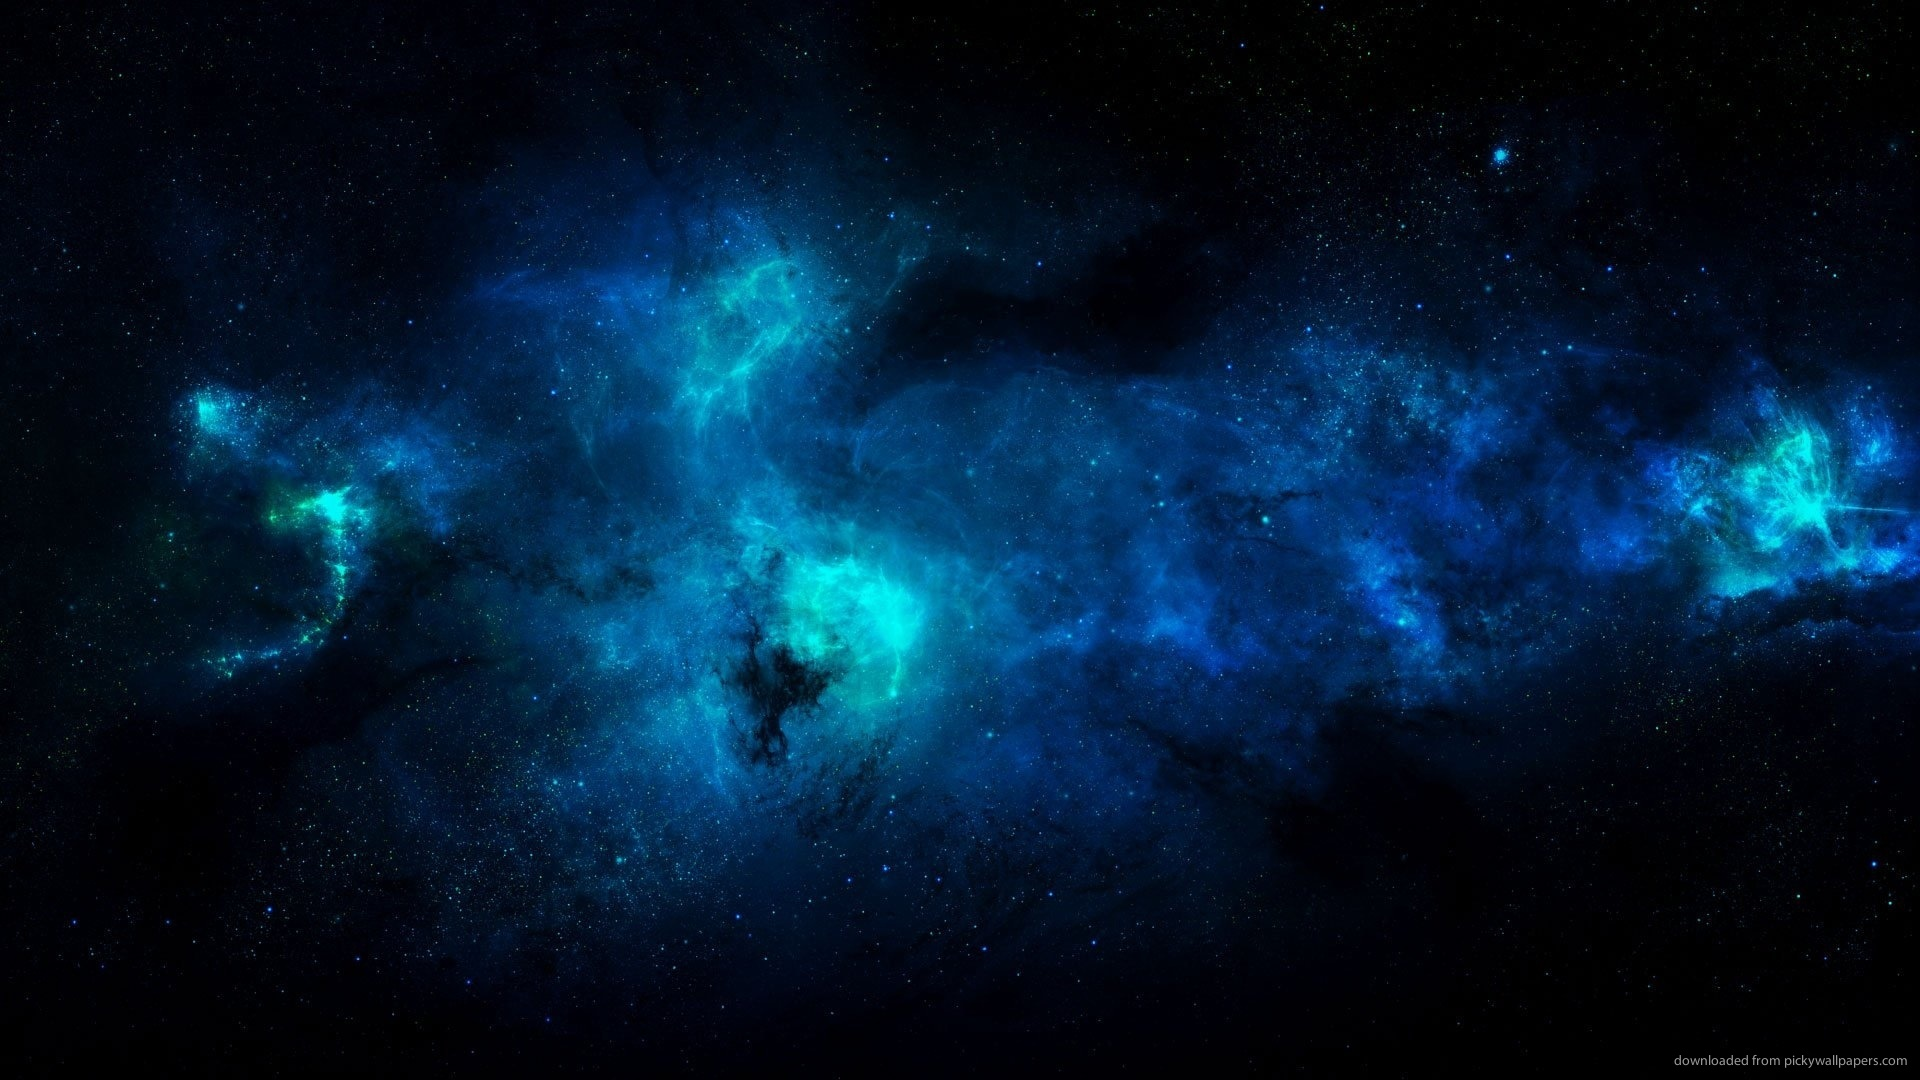 space blue wallpaper 1920x1080 1920x1080